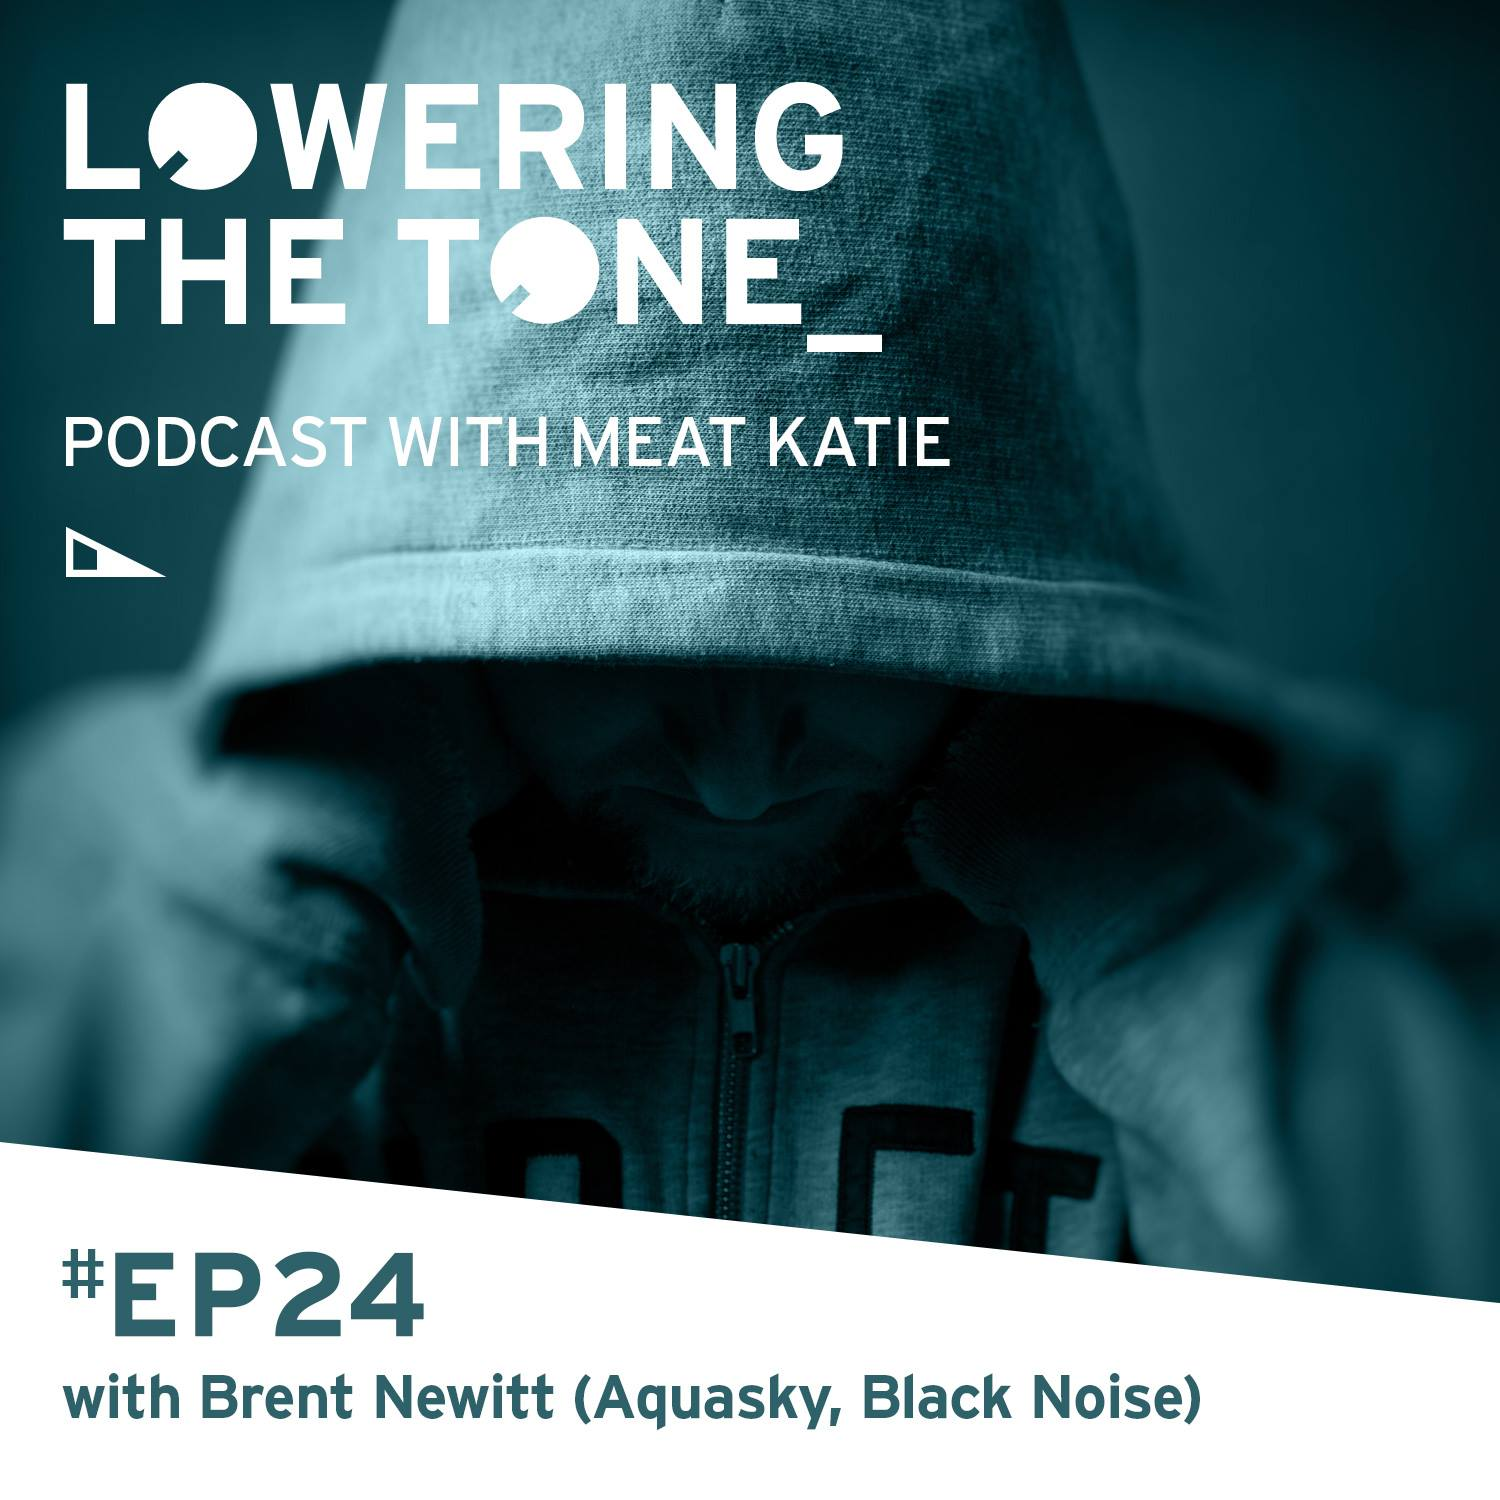 Meat Katie 'Lowering The Tone' Episode 24 - interview with Brent Newitt (Aquasky/Black Noise)